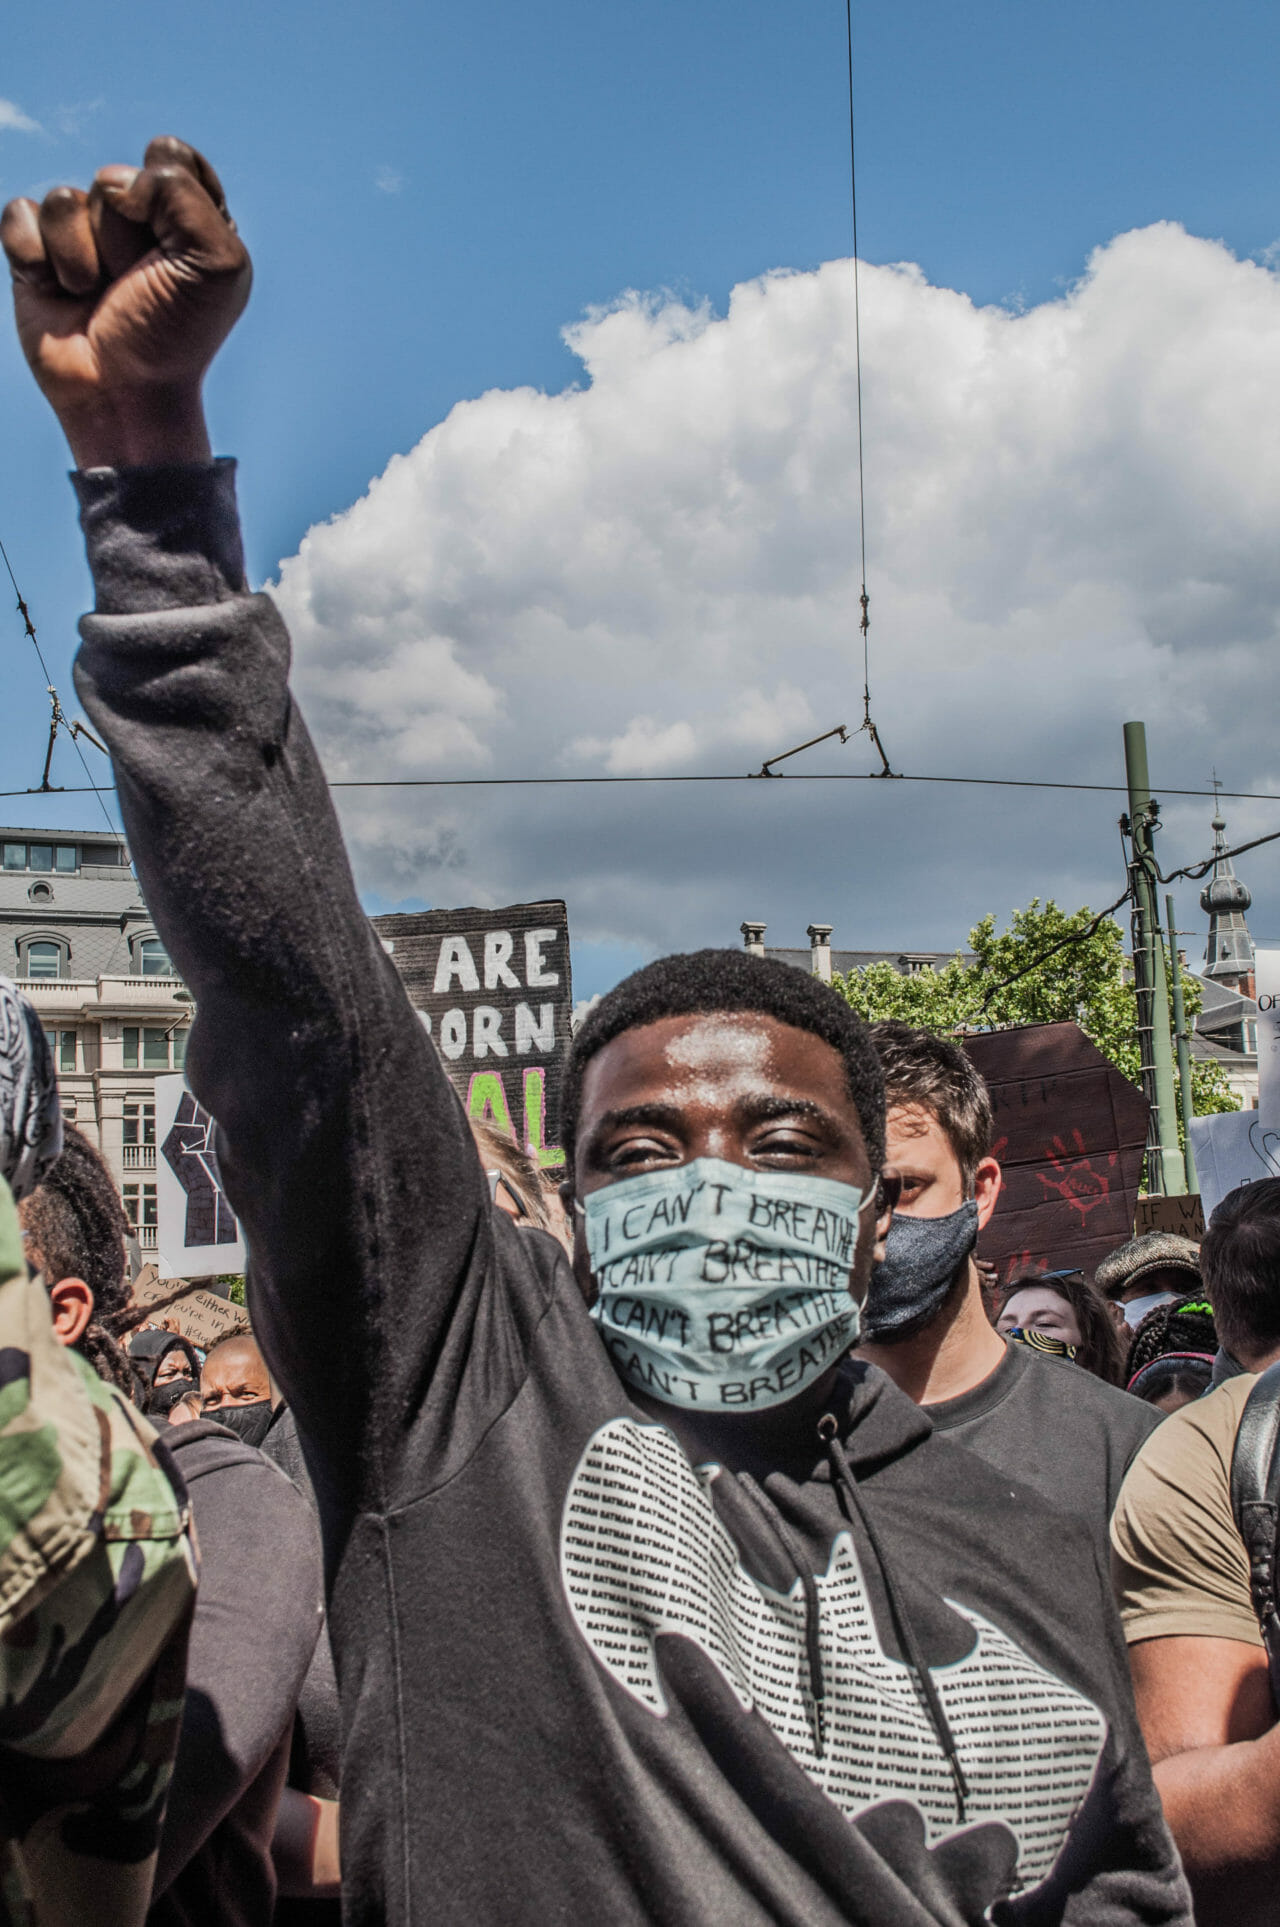 Brussels, Belgium, June 6-7, 2020. A Congolese protestor gives the Black Power salute at a Black Lives Matter rally in Brussels this weekend, where some protesters denounced Belgium's imperial exploitation of what is now the Democratic Republic of Congo. As massive gatherings for racial justice gain momentum around the world, activists in Belgium are hoping the global movement may finally shift attitudes toward the colonial legacy of King Leopold II, the monarch whose tyrannical rule over the Congo Free State (now the Democratic Republic of Congo) is blamed for the deaths of between 10-15 million Congolese. © Pamela Tulizo for Fondation Carmignac